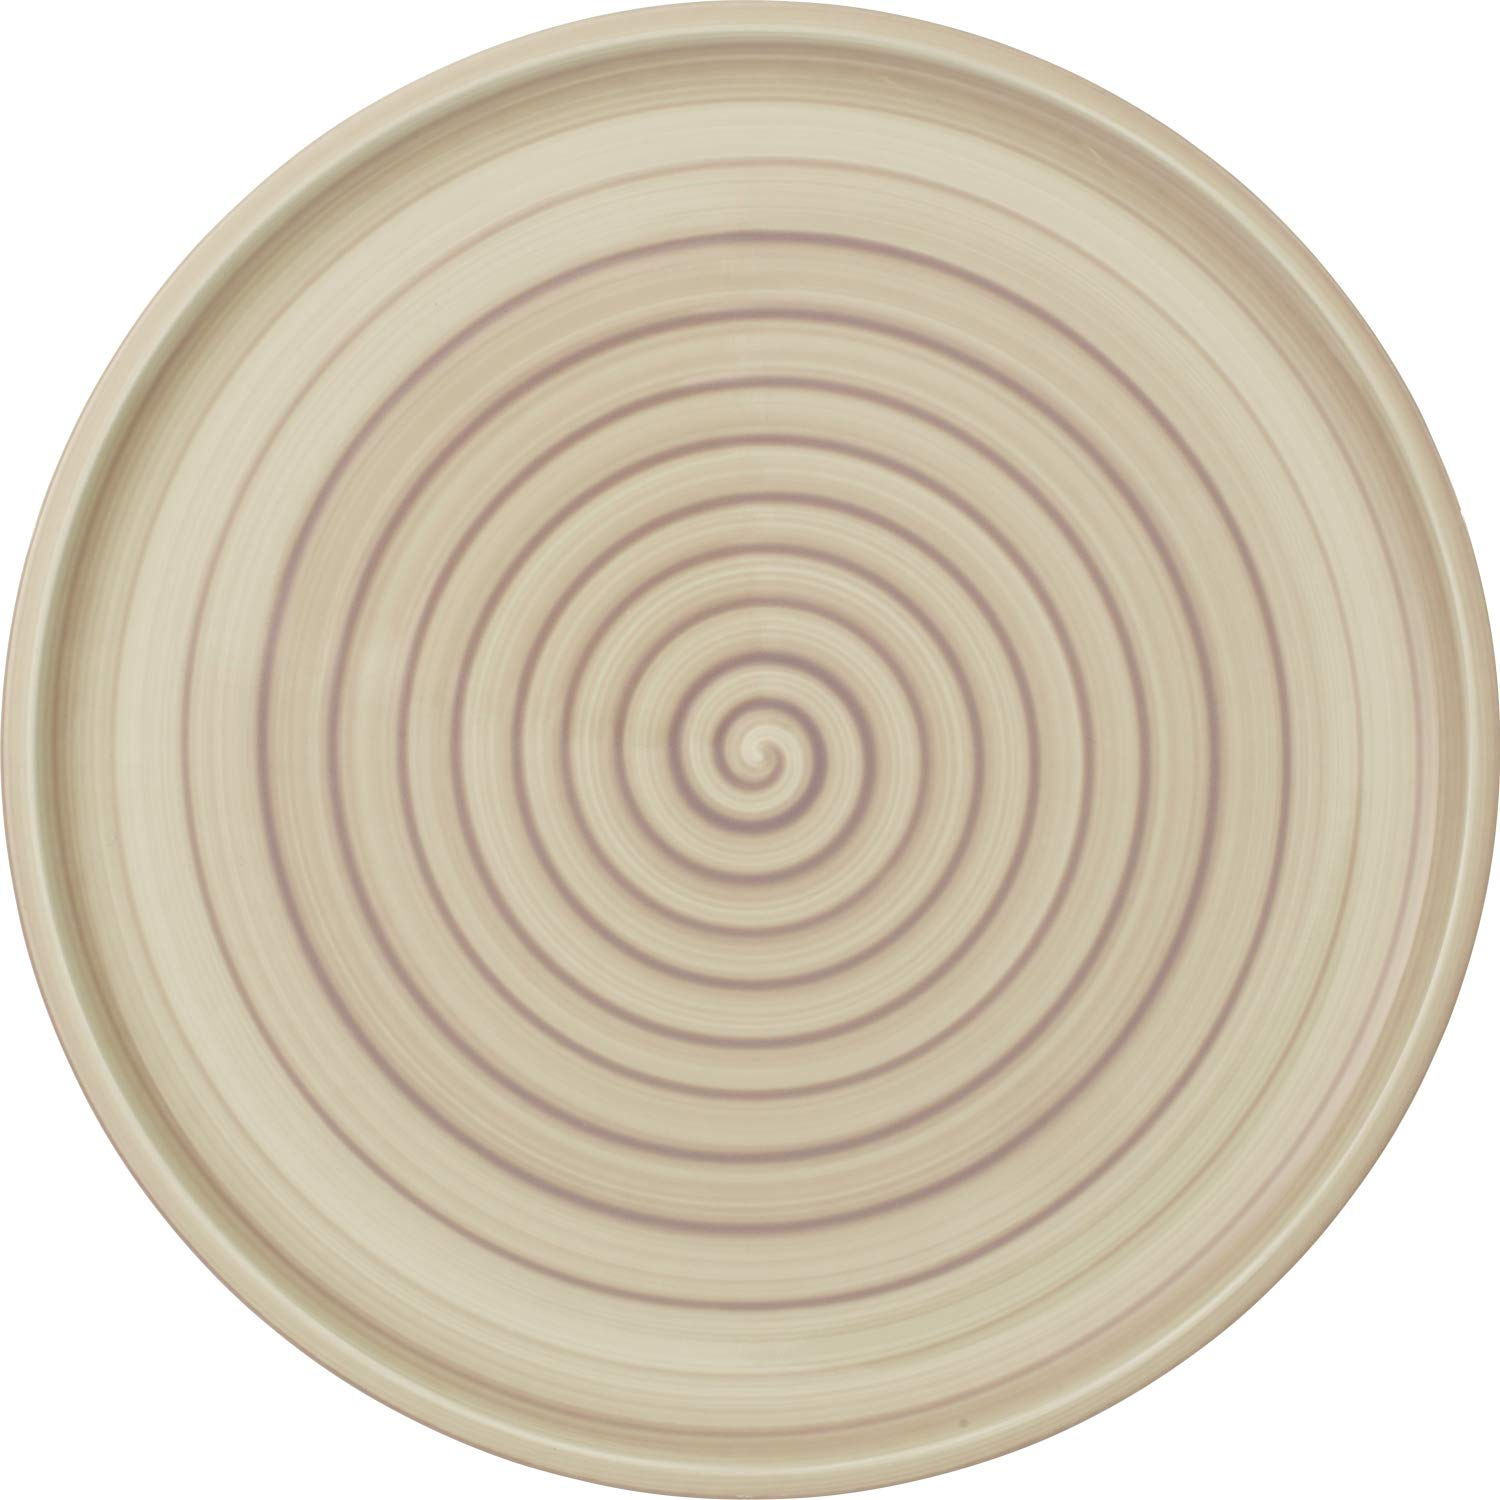 Artesano Nature Beige Buffet/Pizza Plate by Villeroy & Boch - Premium Porcelain - Made in Germany - Dishwasher and Microwave Safe - 12.5 Inches by Villeroy & Boch